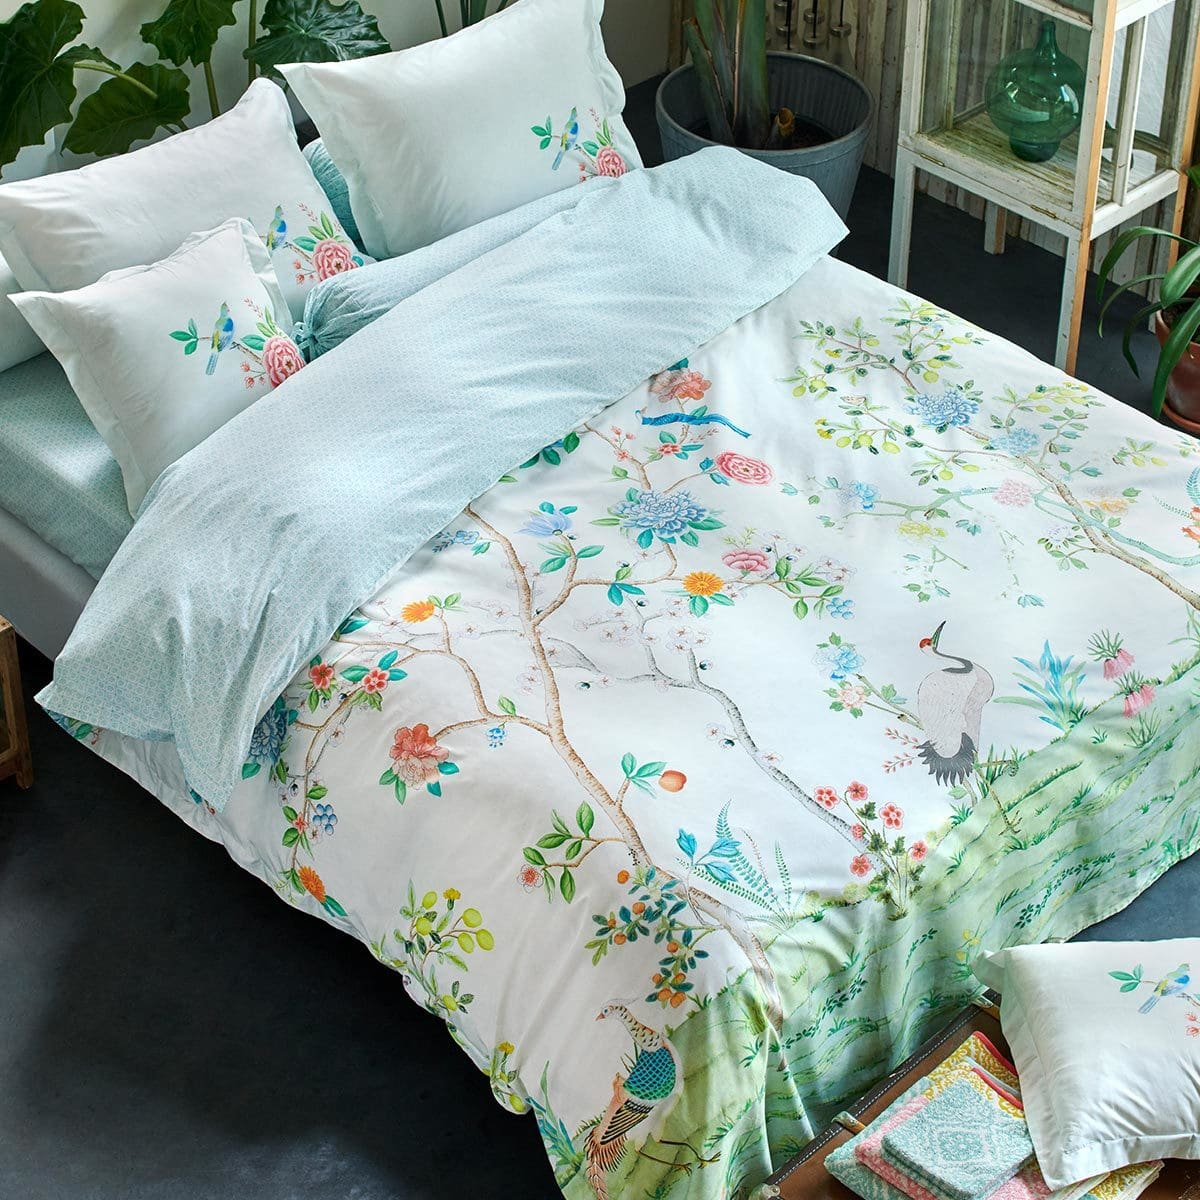 Bedding Pip Studio Perkal Bettwäsche Floral Fantasy Red Romantik Blumen Blüten Design Home Furniture Diy New Times Bg